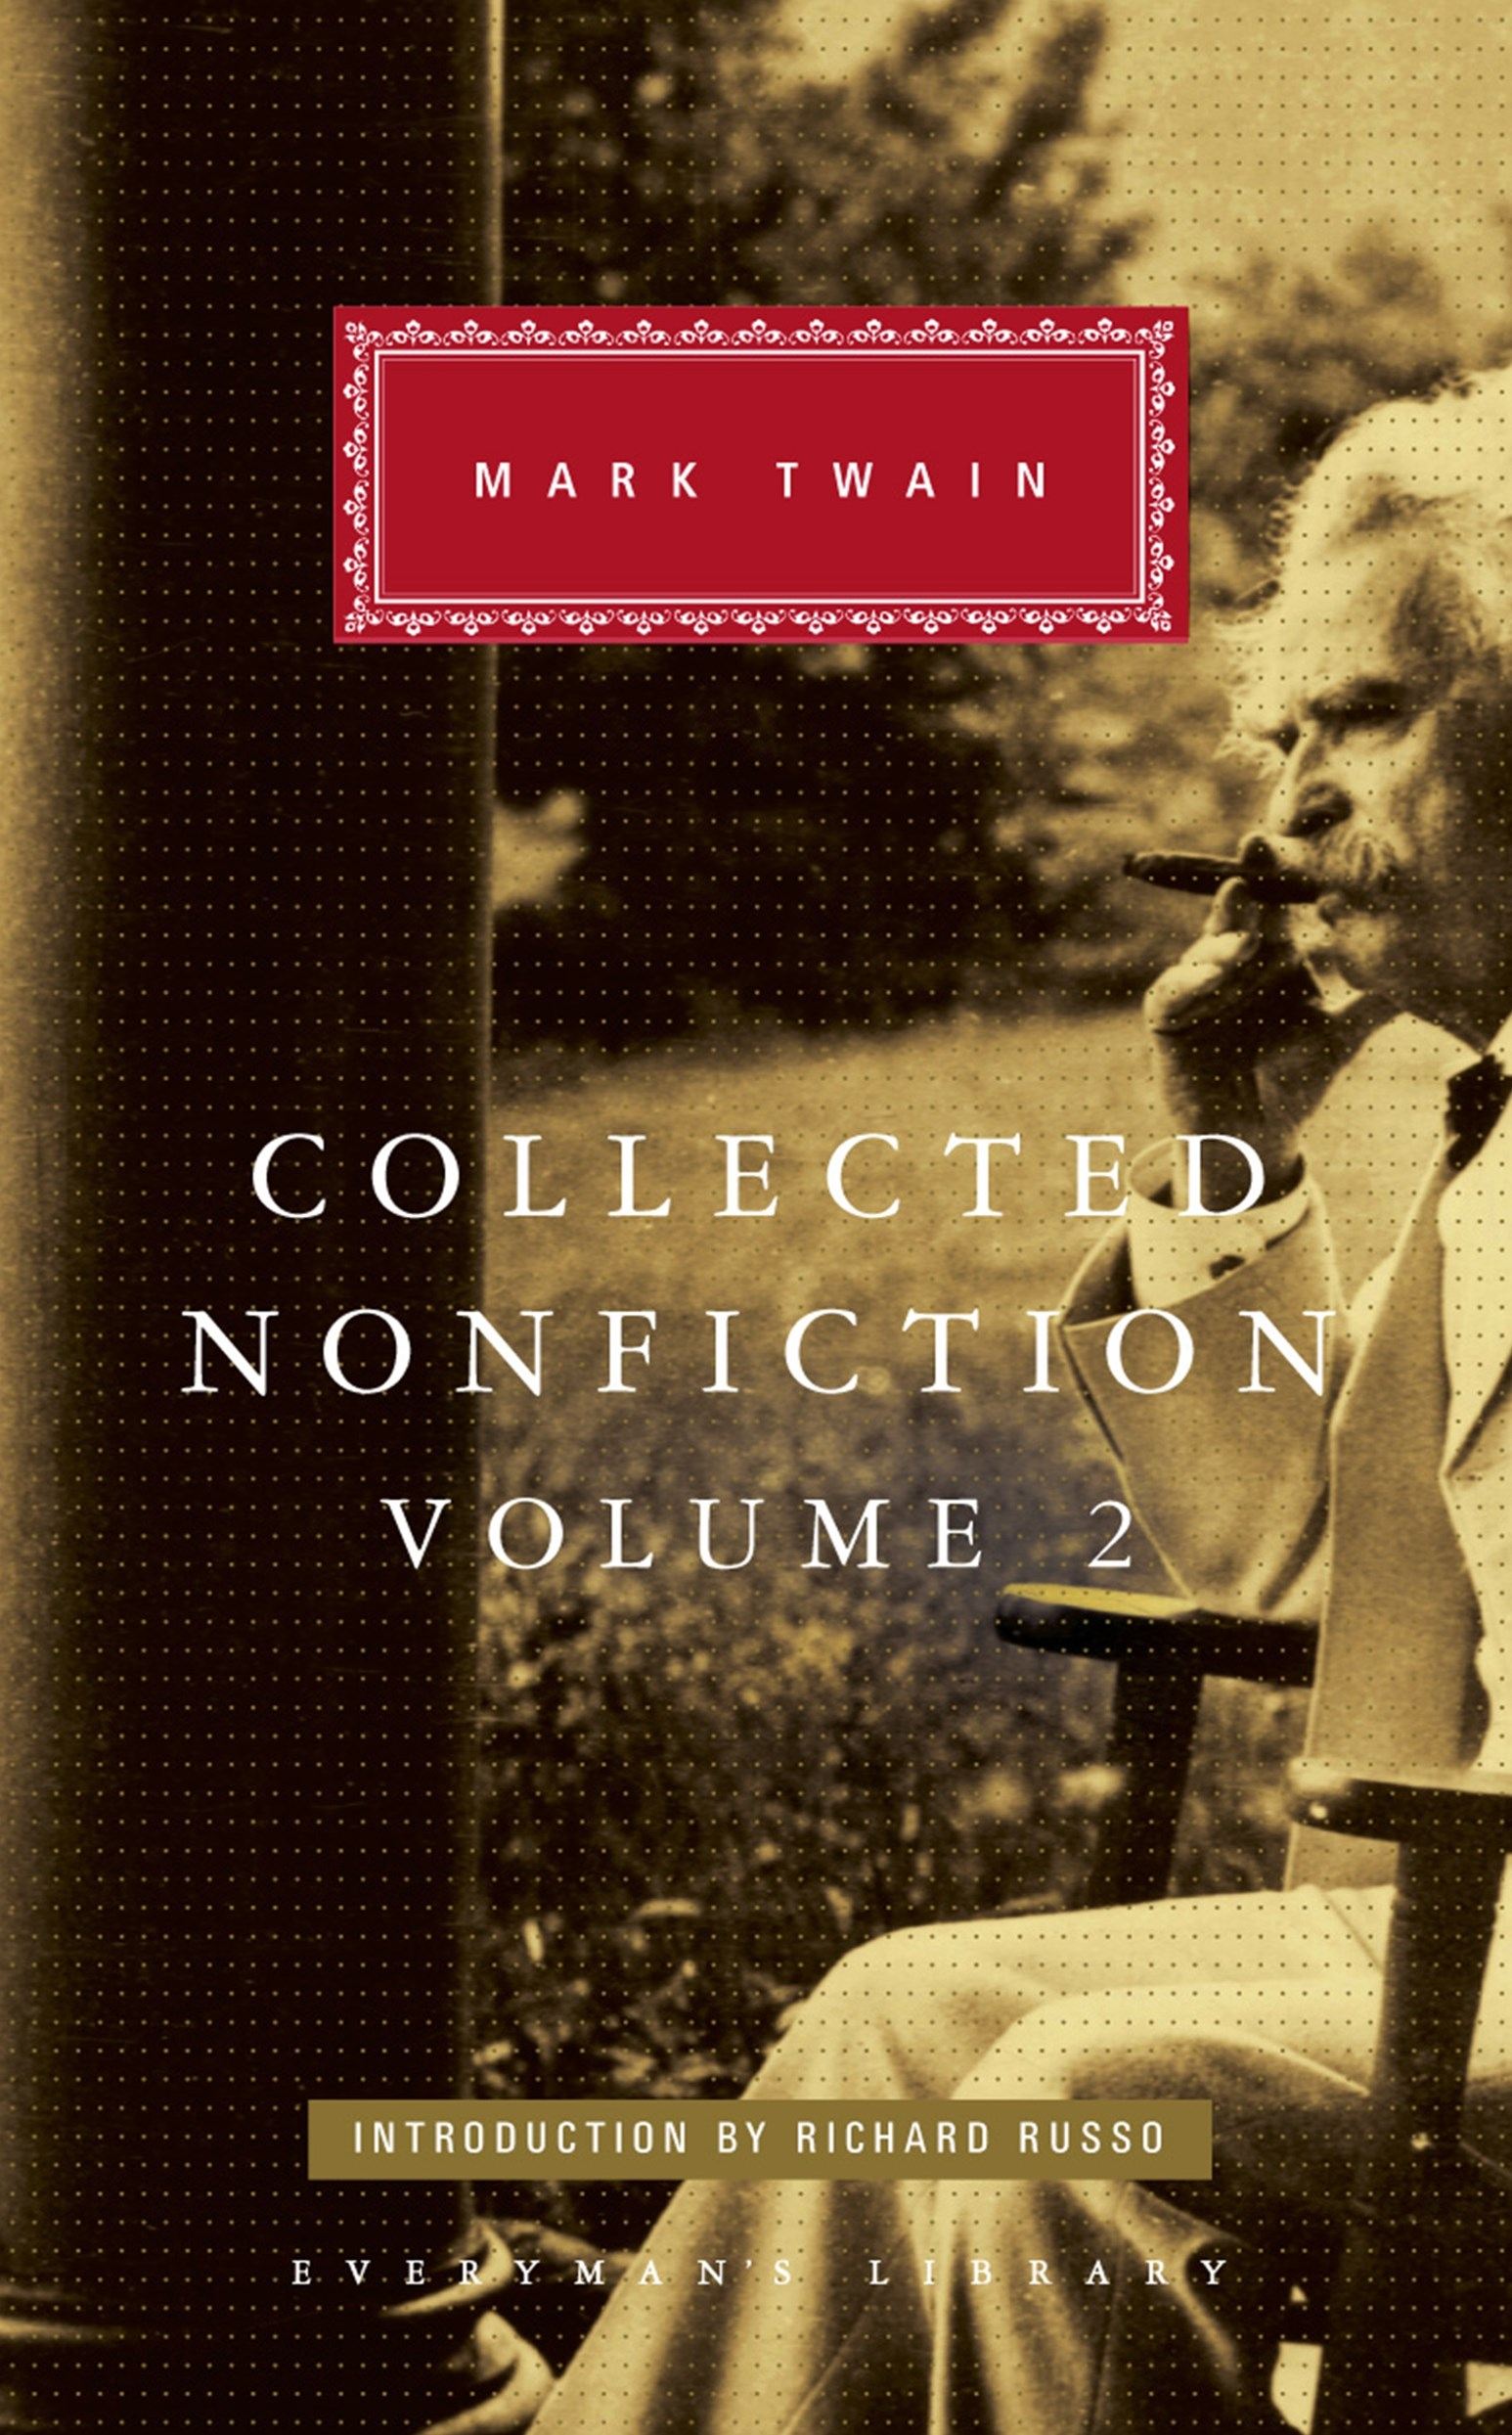 Collected Nonfiction Volume 2: Selections from the Memoirs and Travel Writings